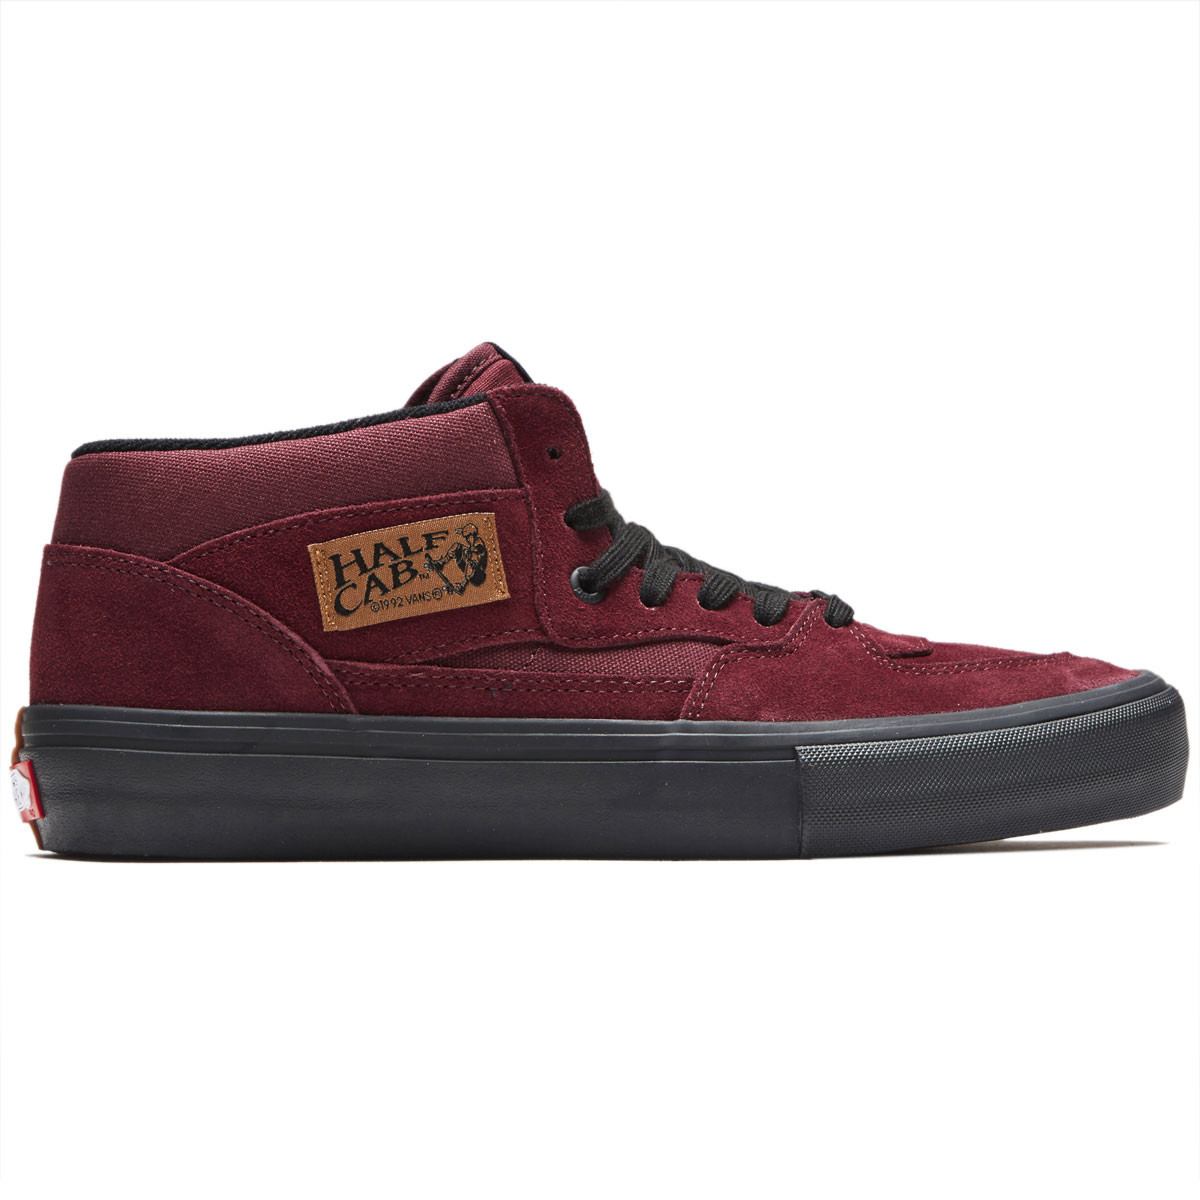 f6f8461fe587 Vans Half Cab Pro Shoes - Port Royale Black - 8.0